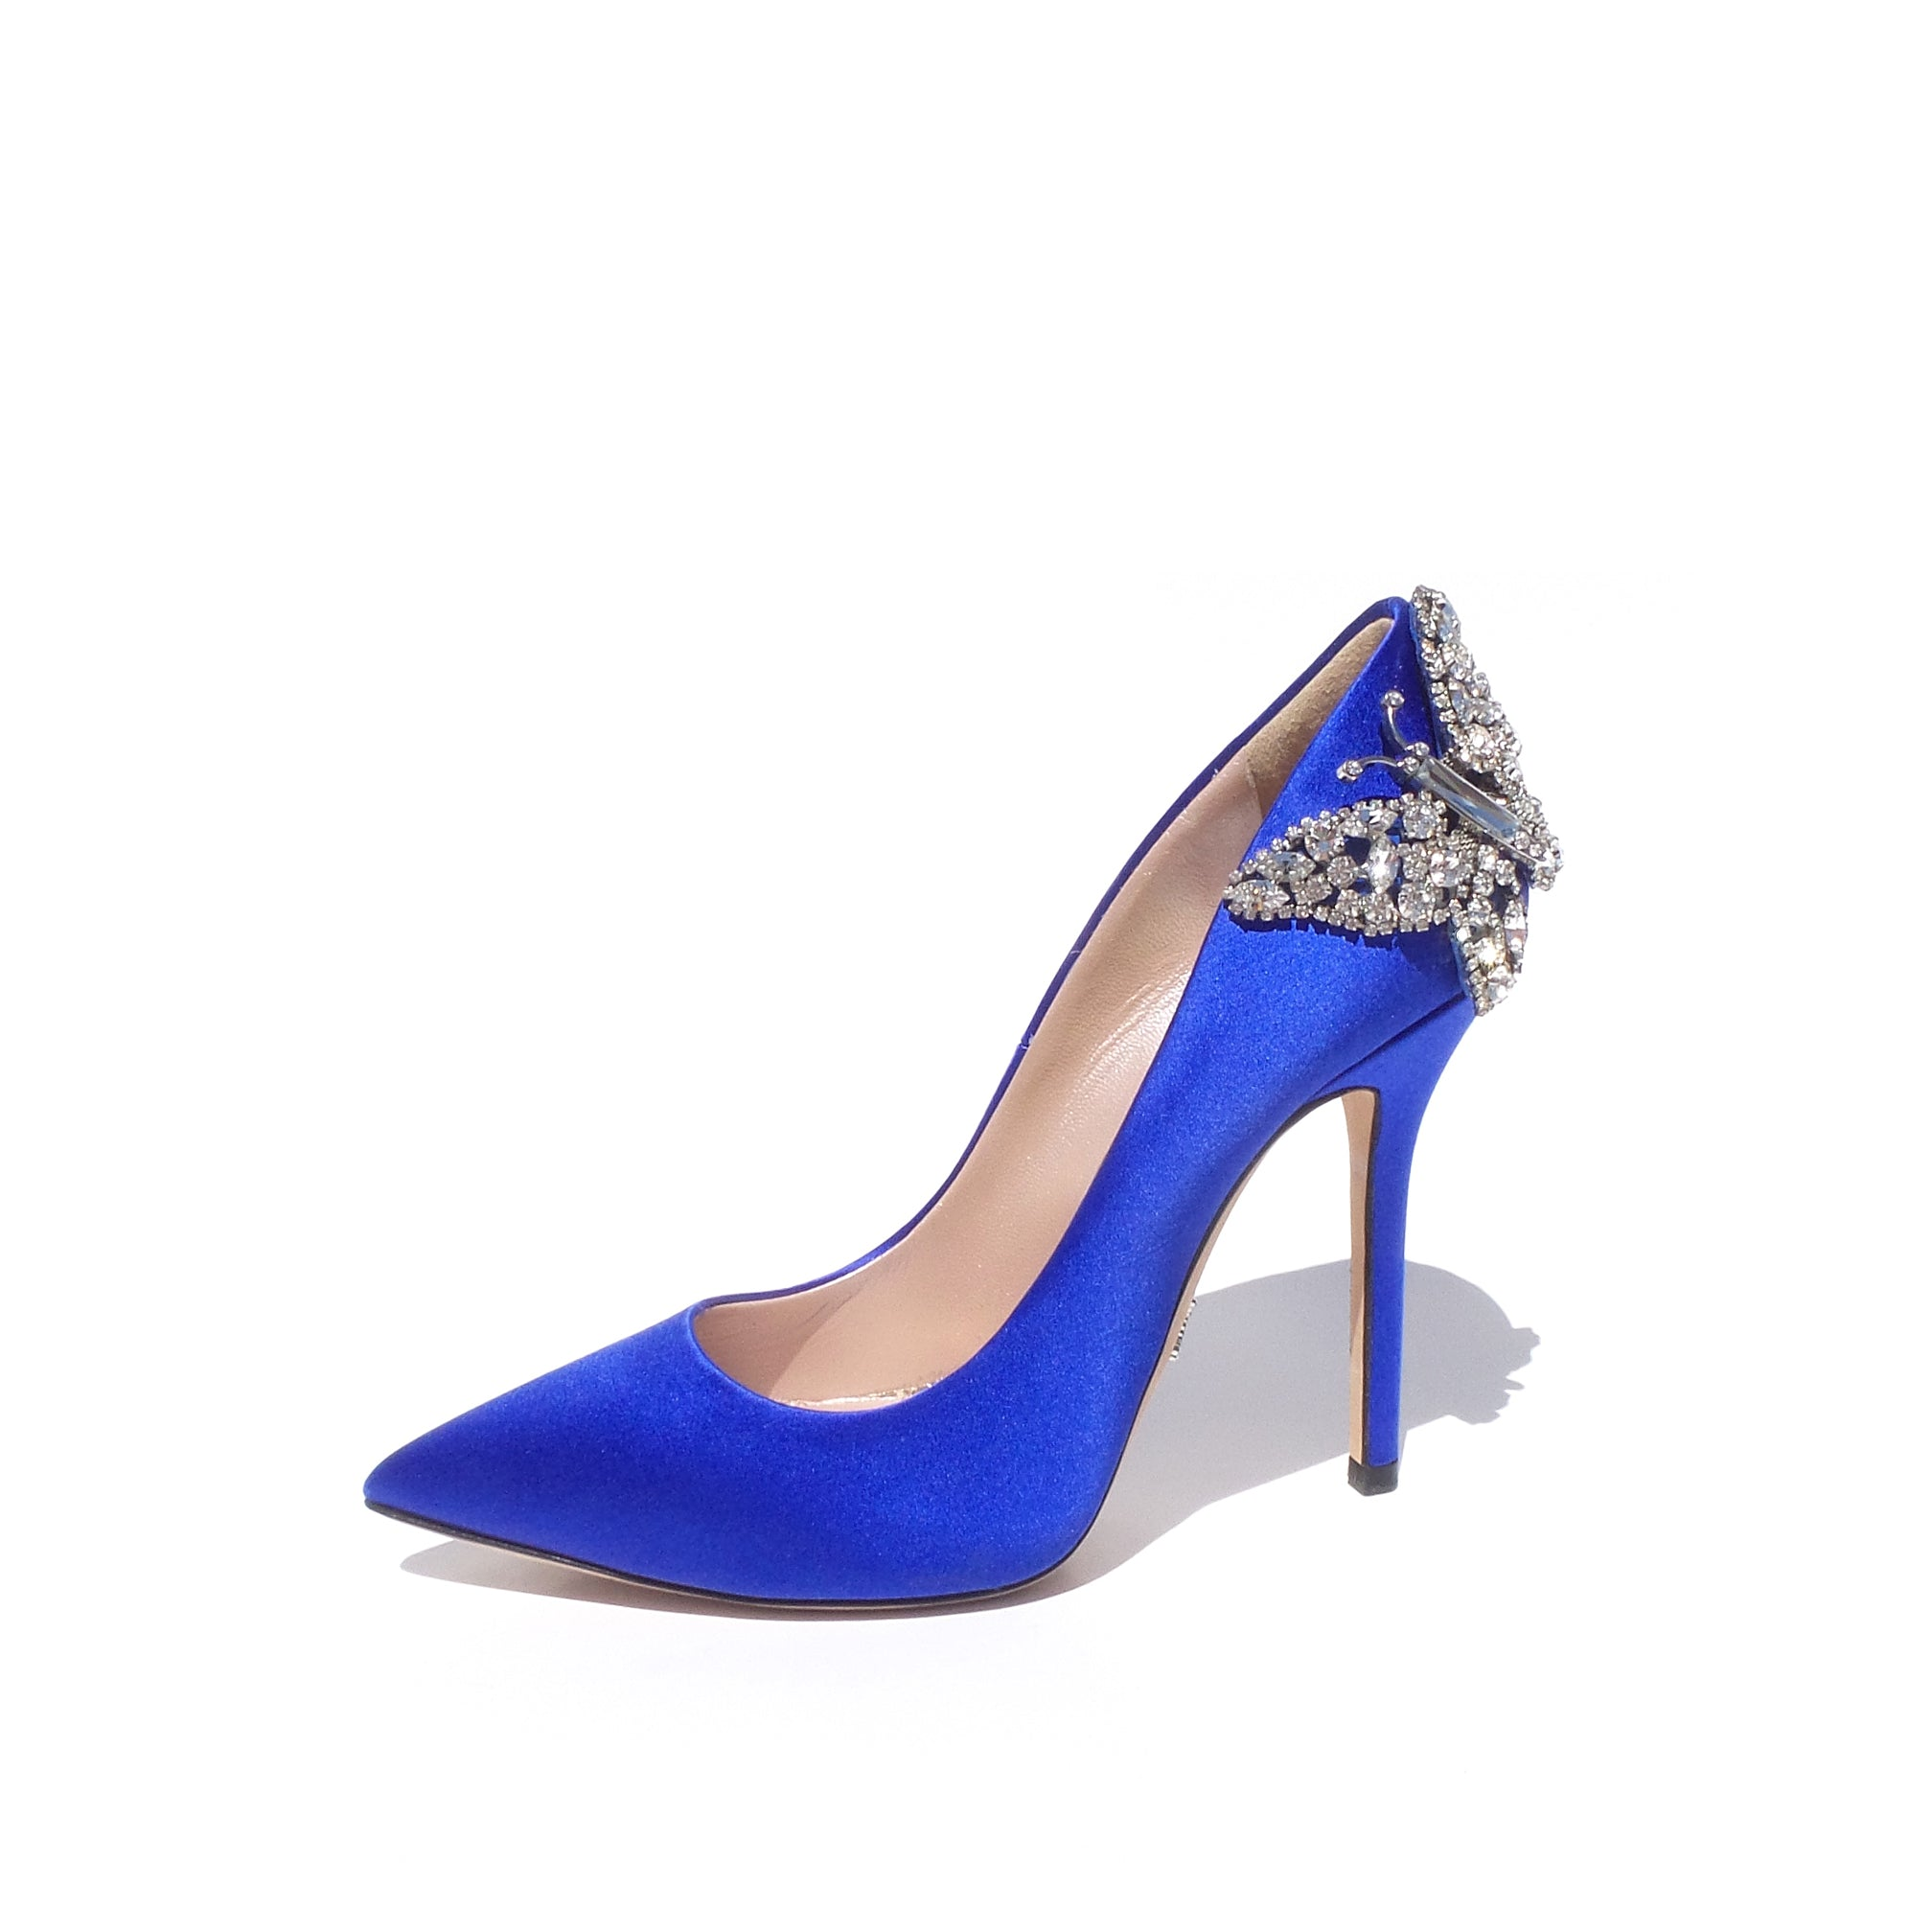 'Sold' ARUNA SETH Pointy Farfalla Blue Satin Crystal Butterfly Heels Bridal Pumps 36 EC